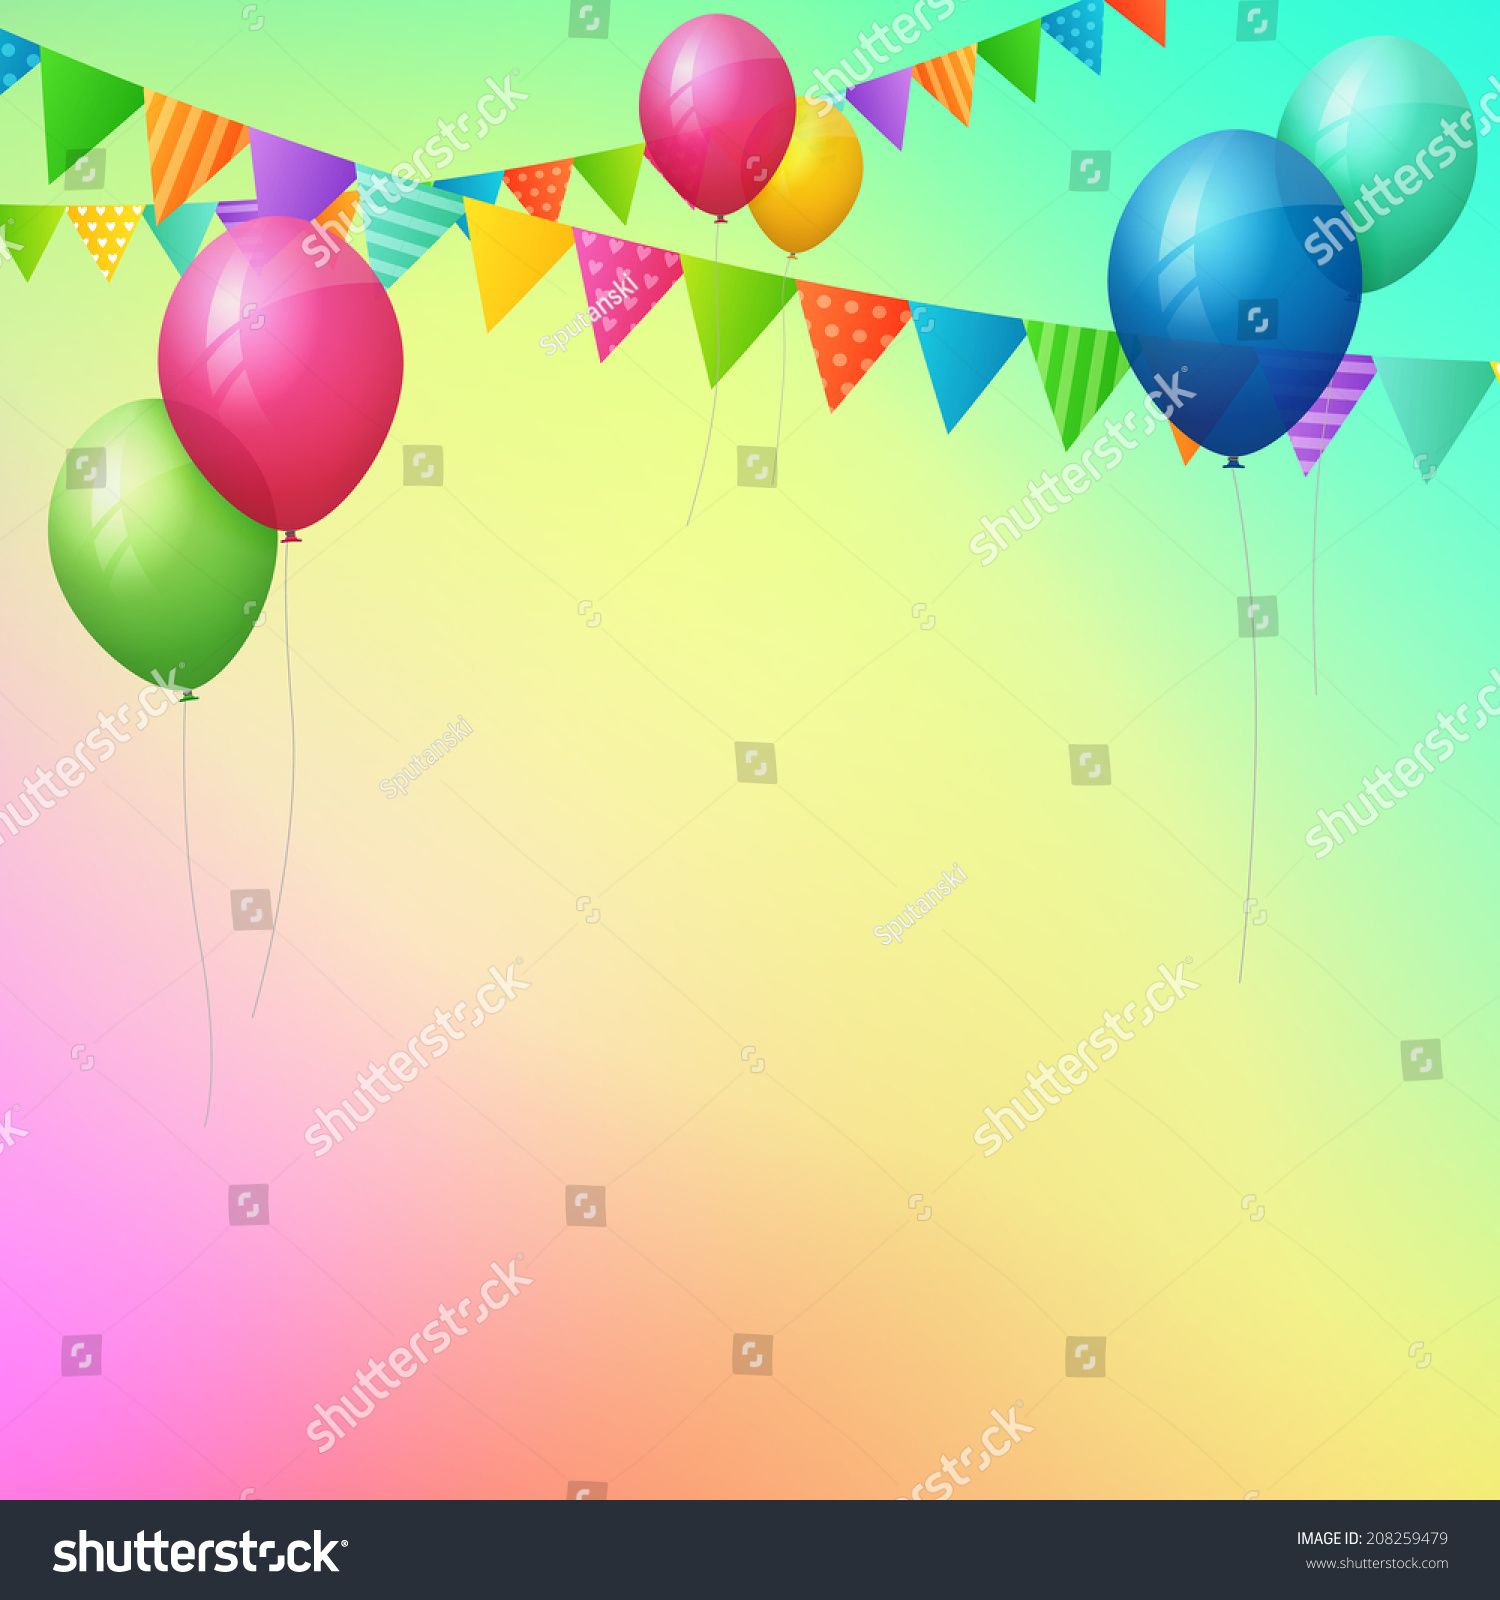 Happy Birthday Greeting Card With Colorful Balloons And Flags